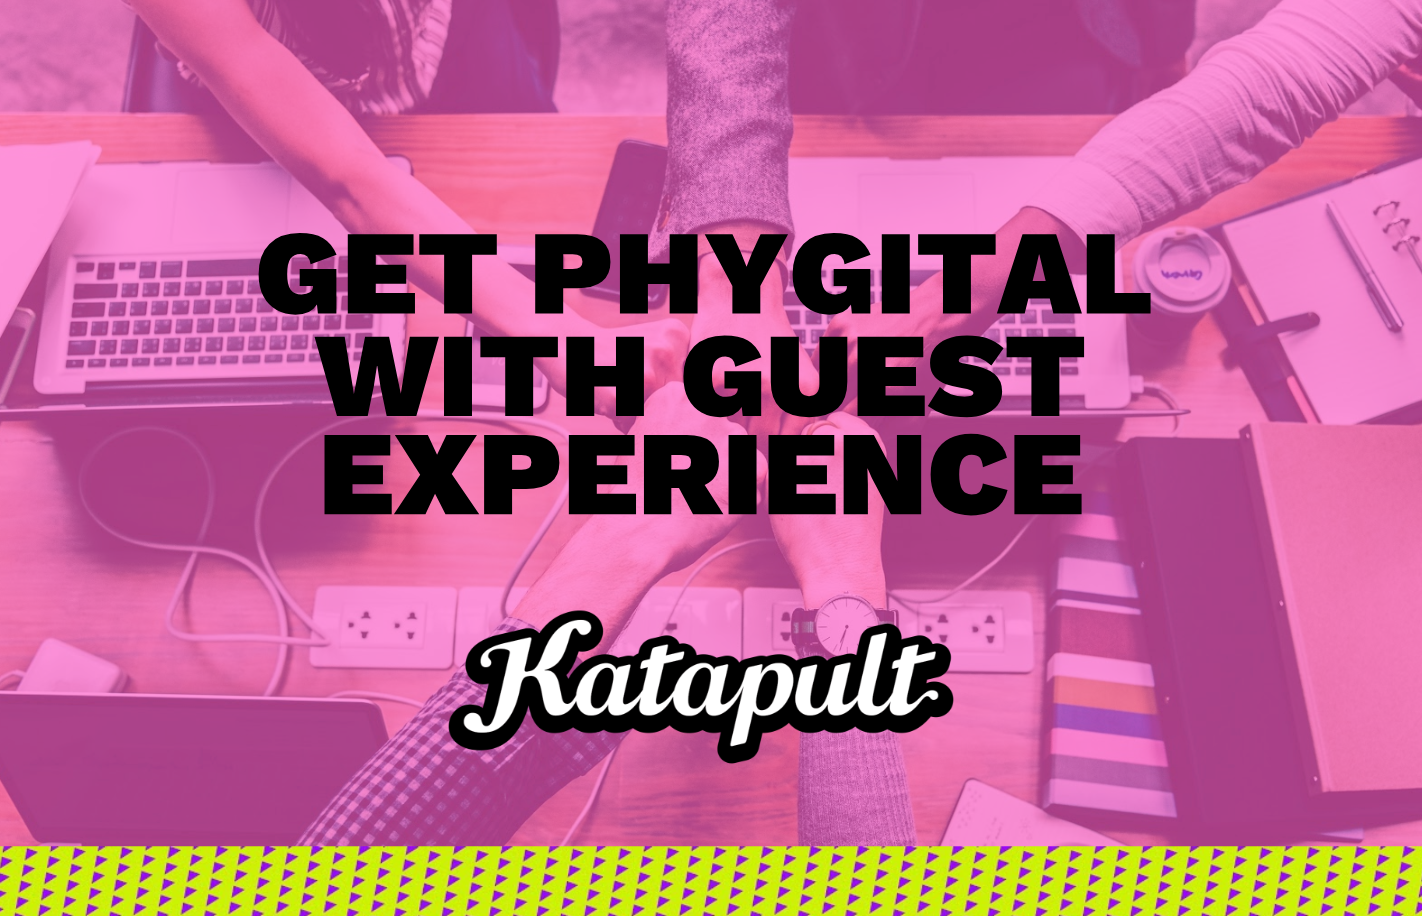 Phygital guest experience